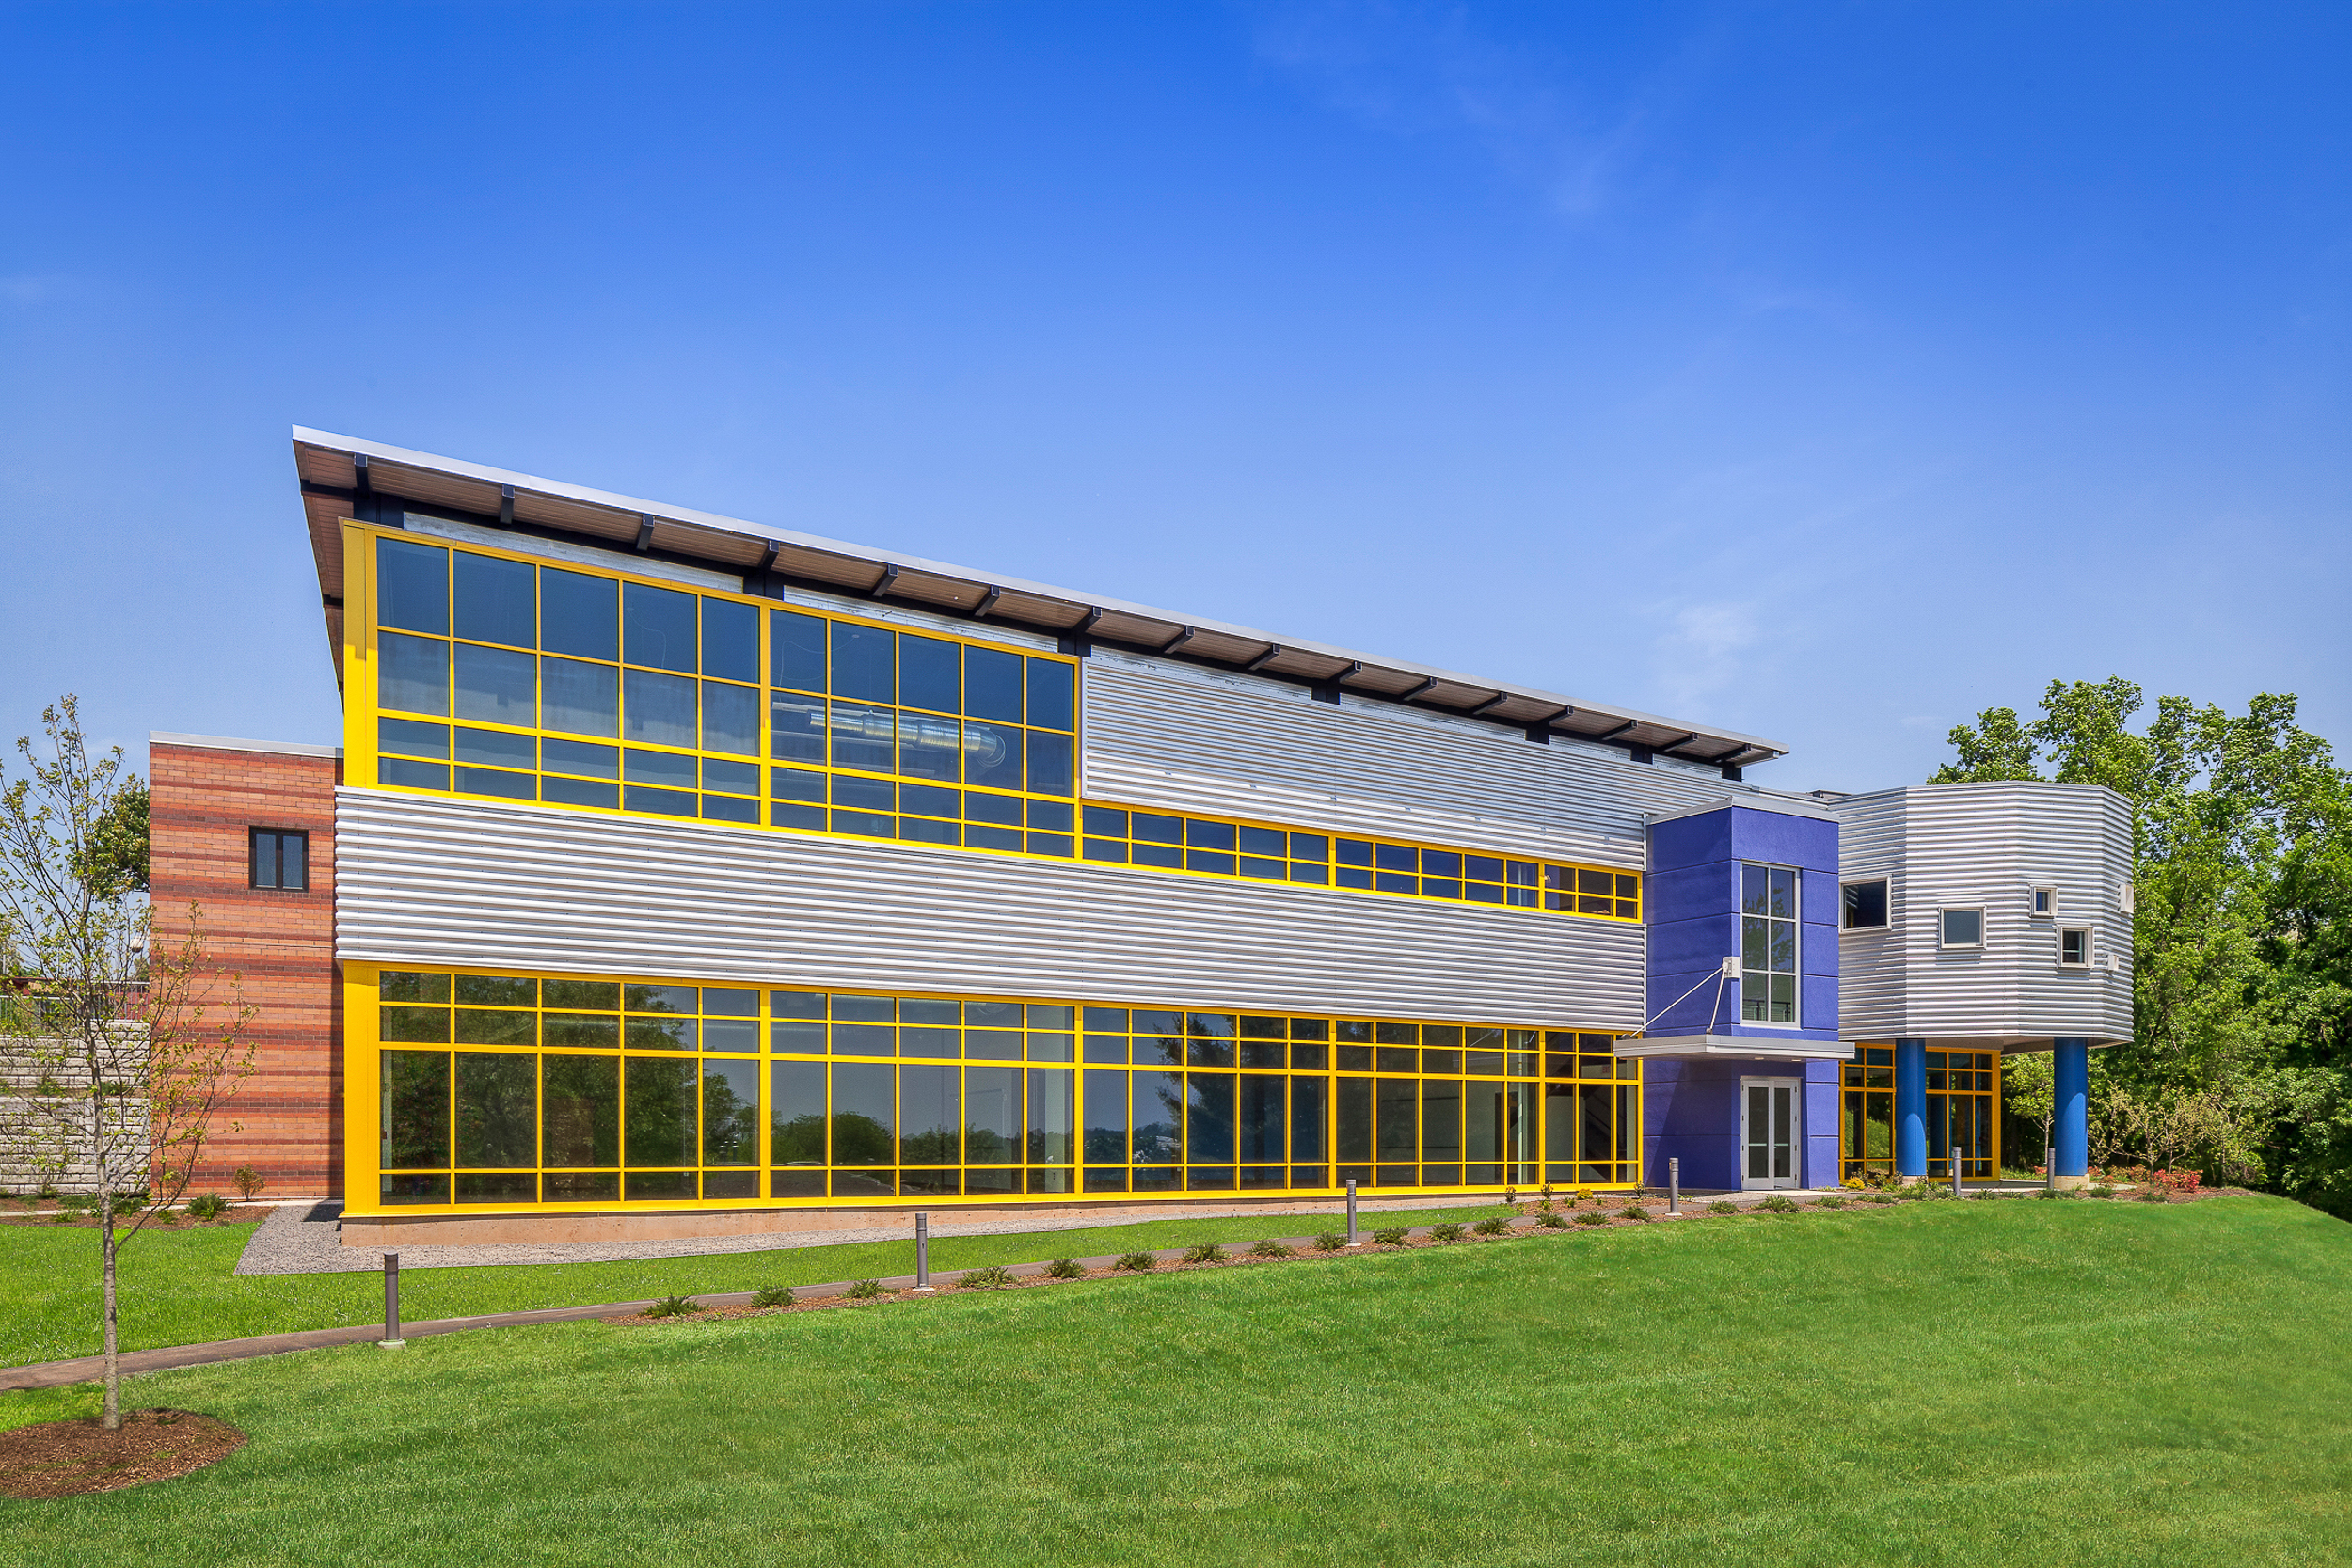 New Britain Community Education Center, New Britain, CT.  Architectural design by Quisenberry Arcari Malik Architects.